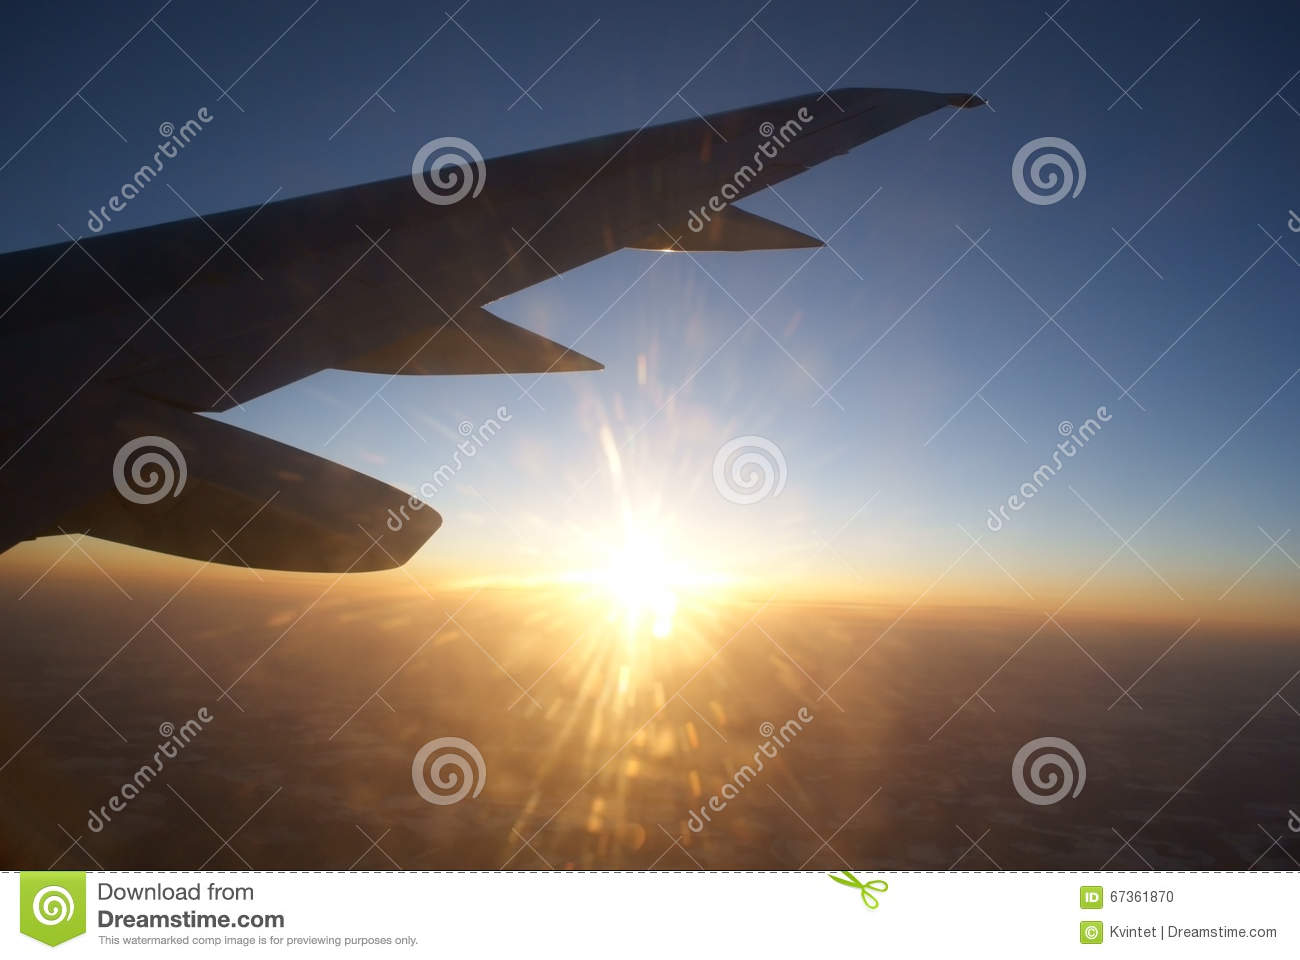 Sunset at the height of the air under the wing